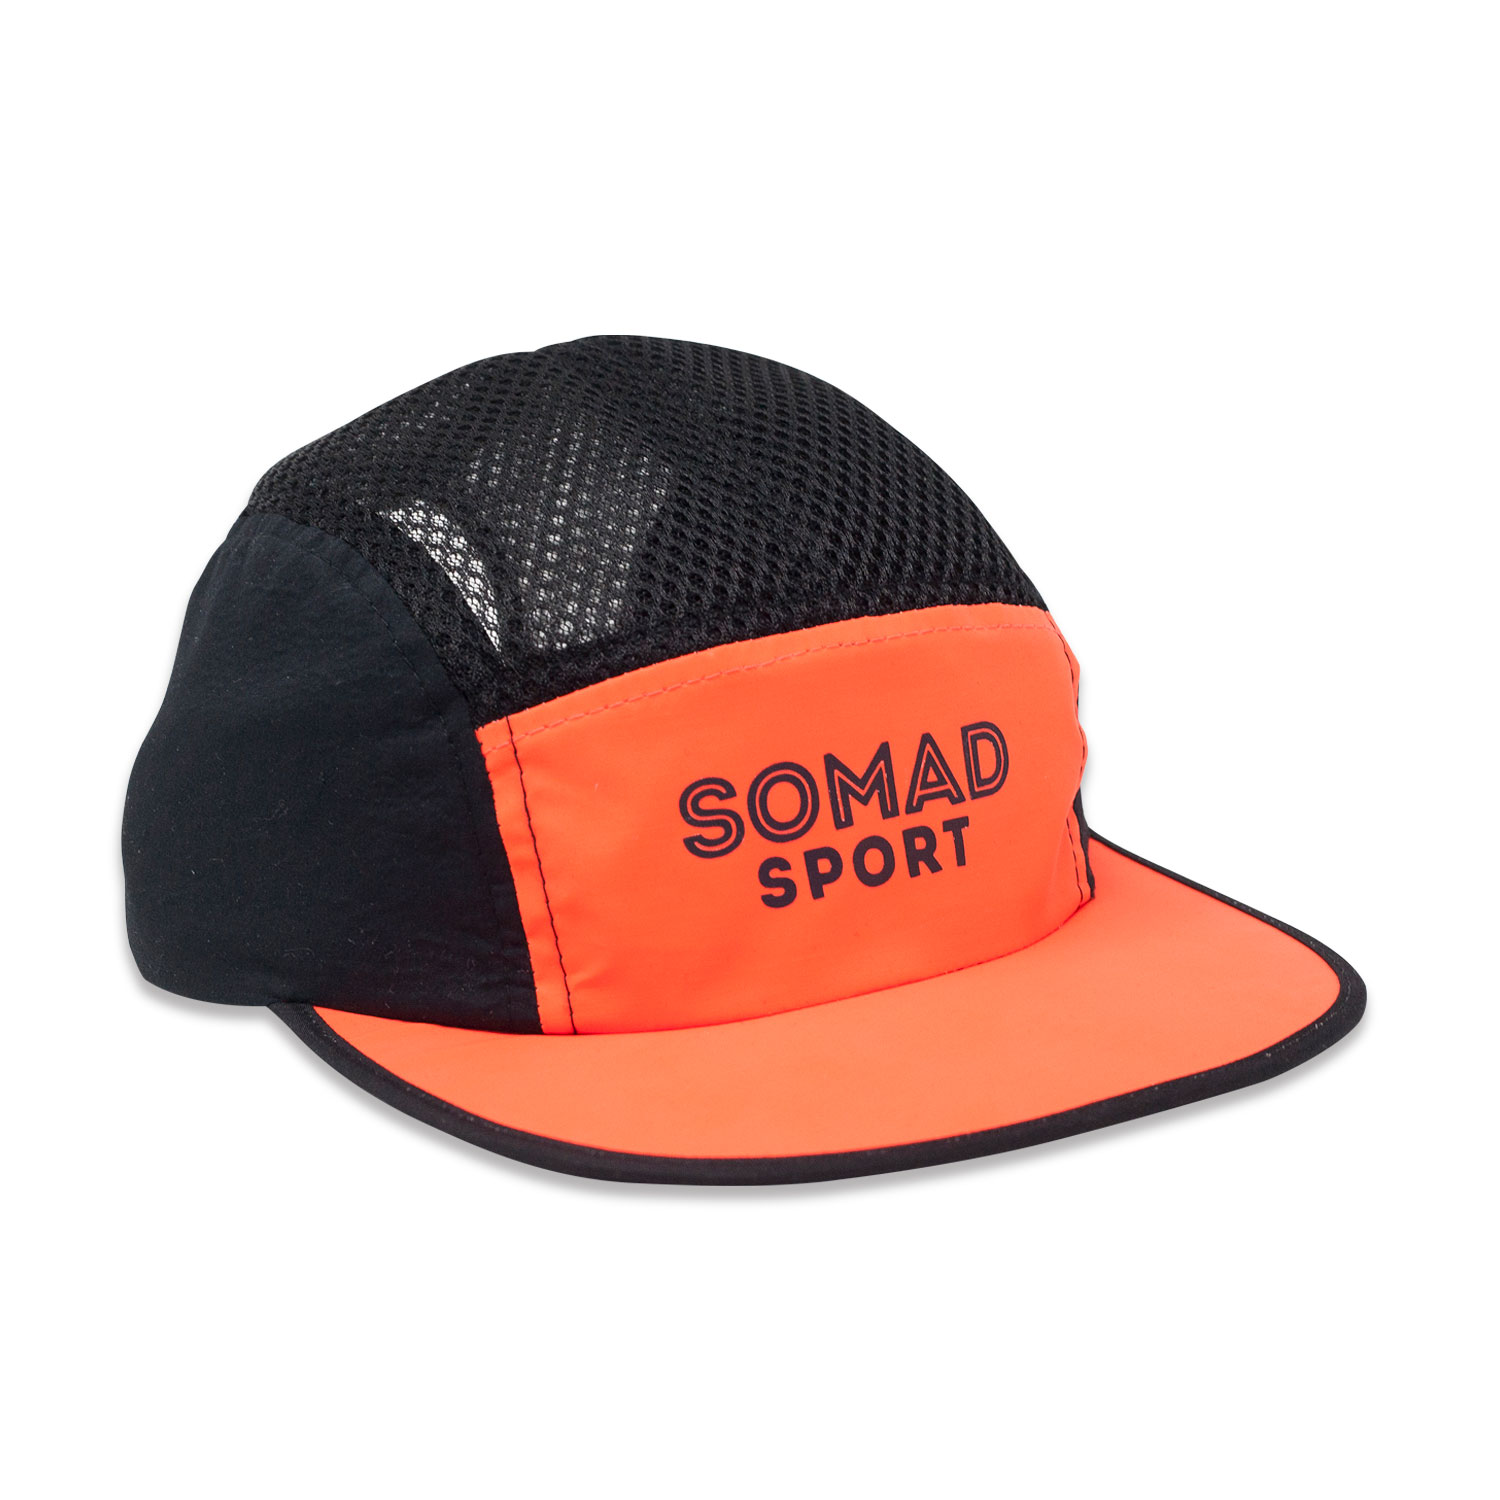 5 Panel So Mad Sport Fluor Orange Reflective Rainbow